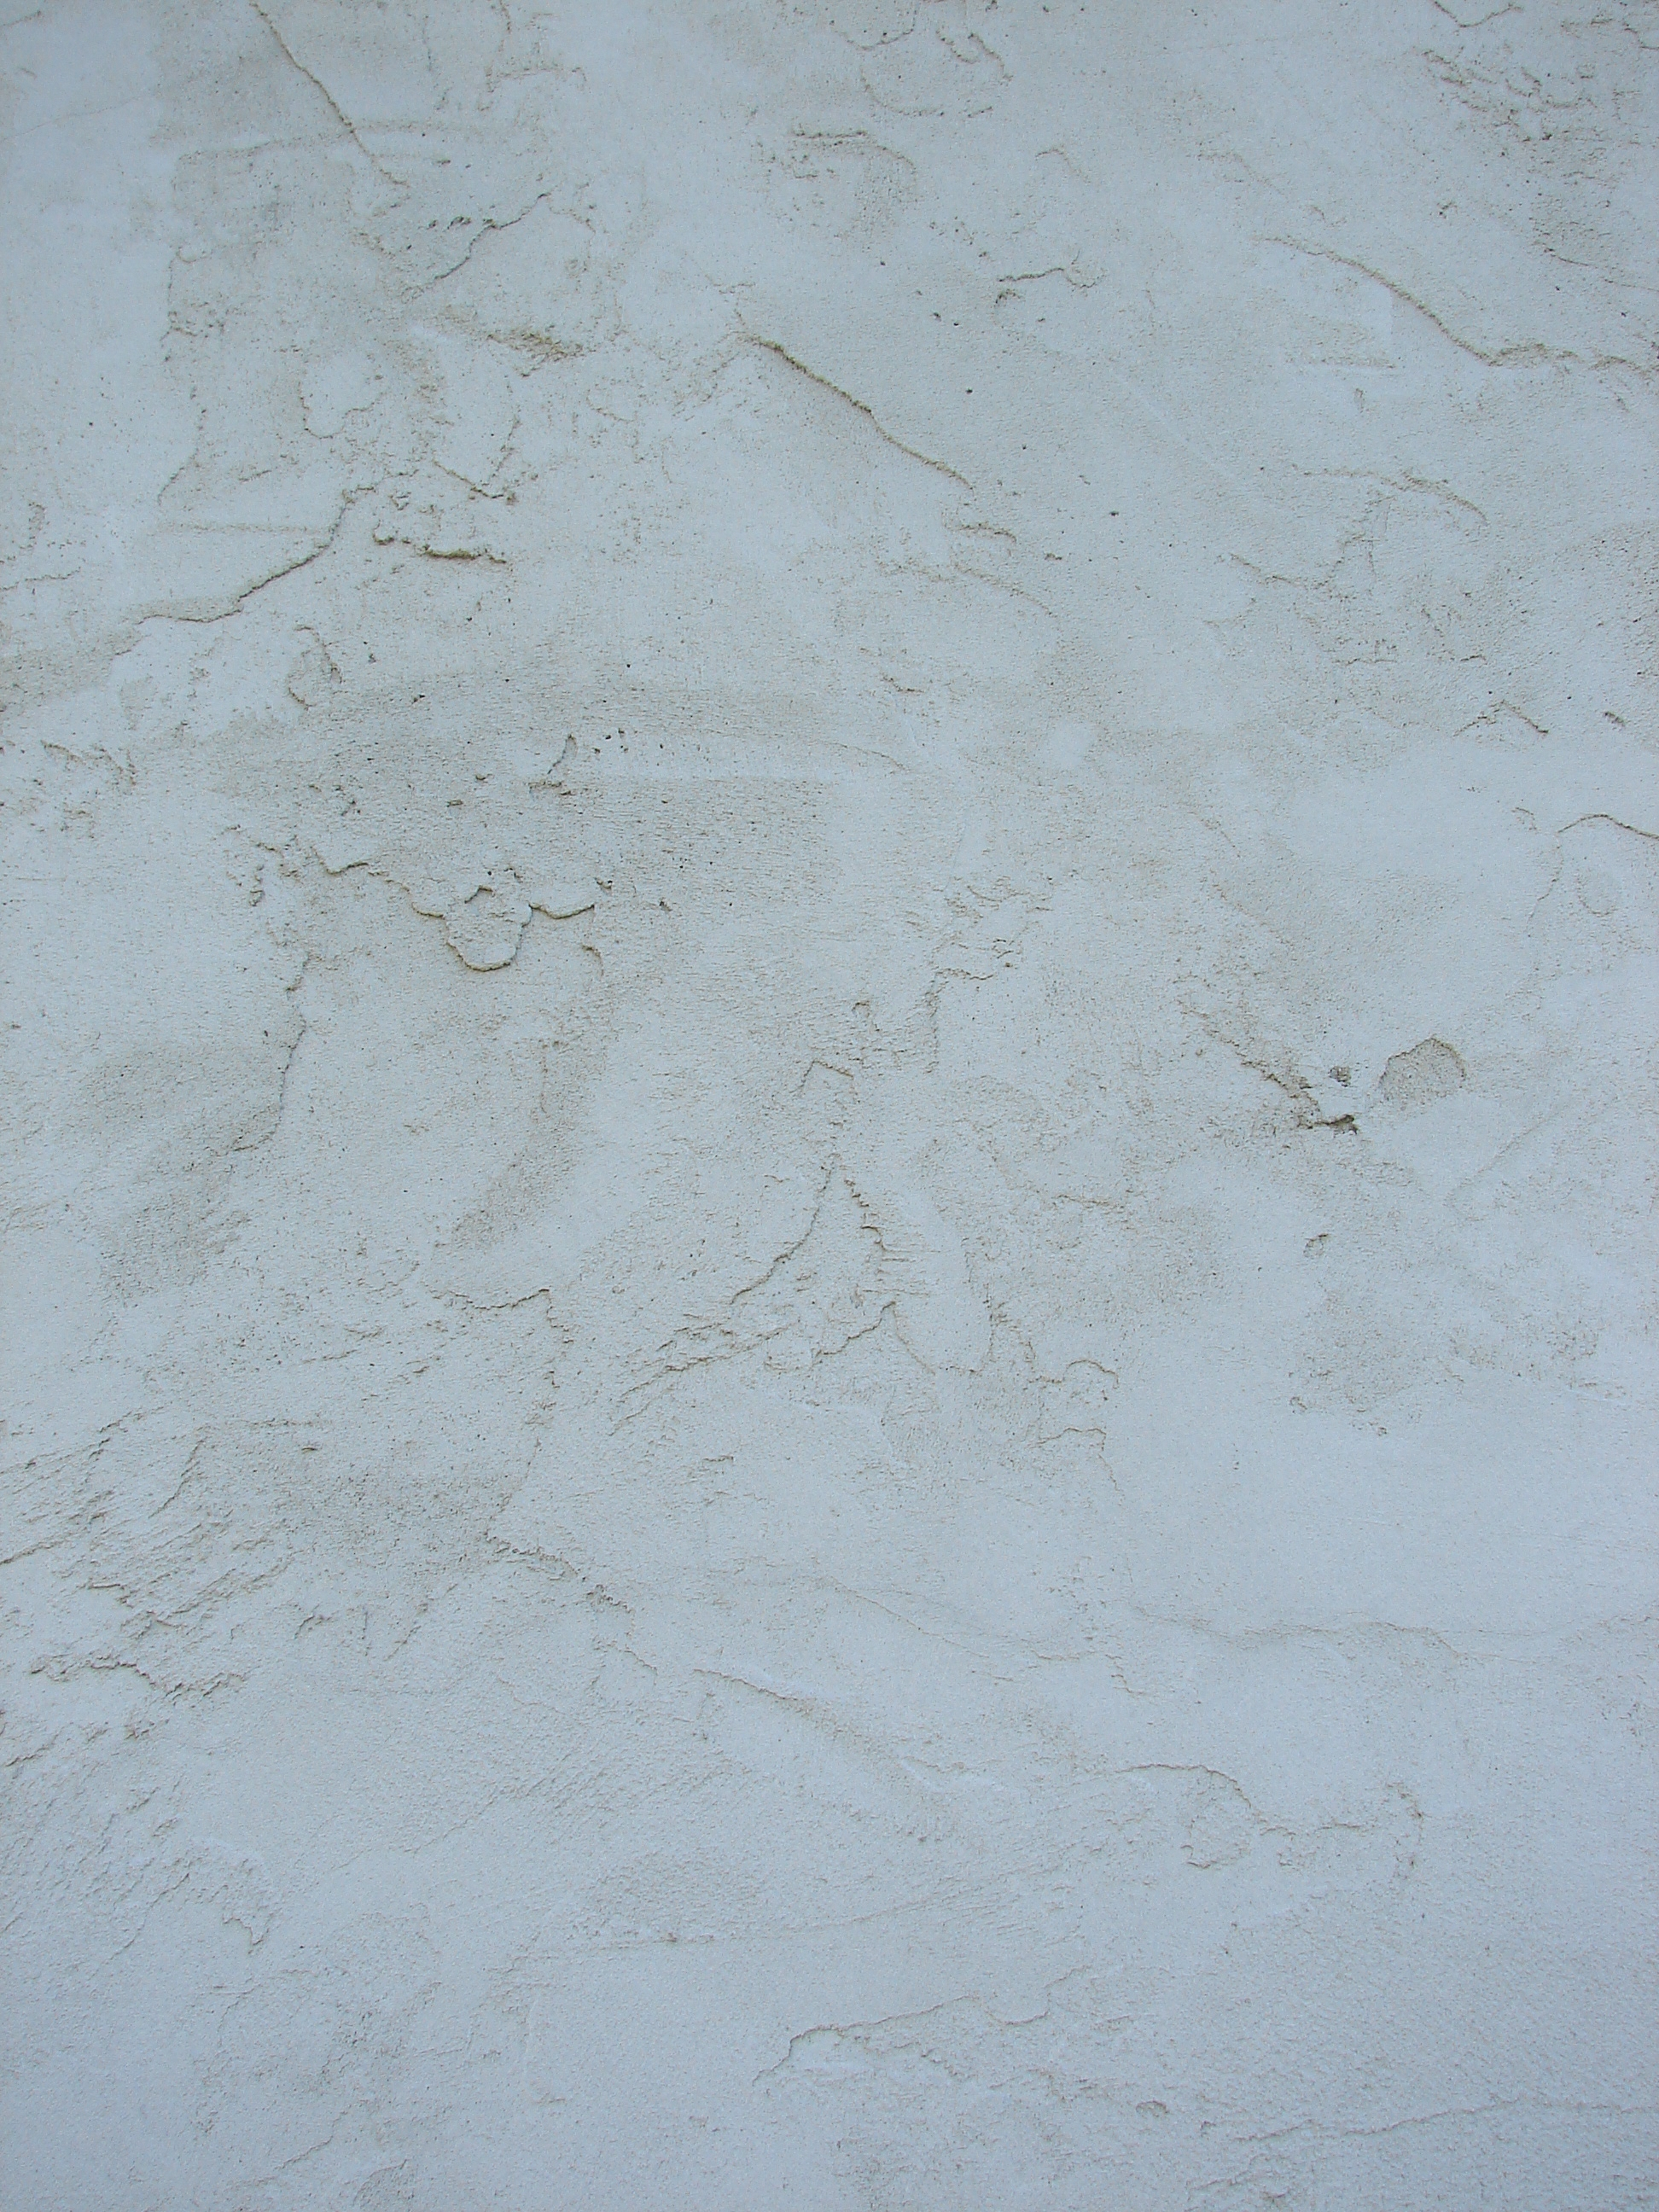 White Stucco Wall Texture 1 By Fantasystock On Deviantart